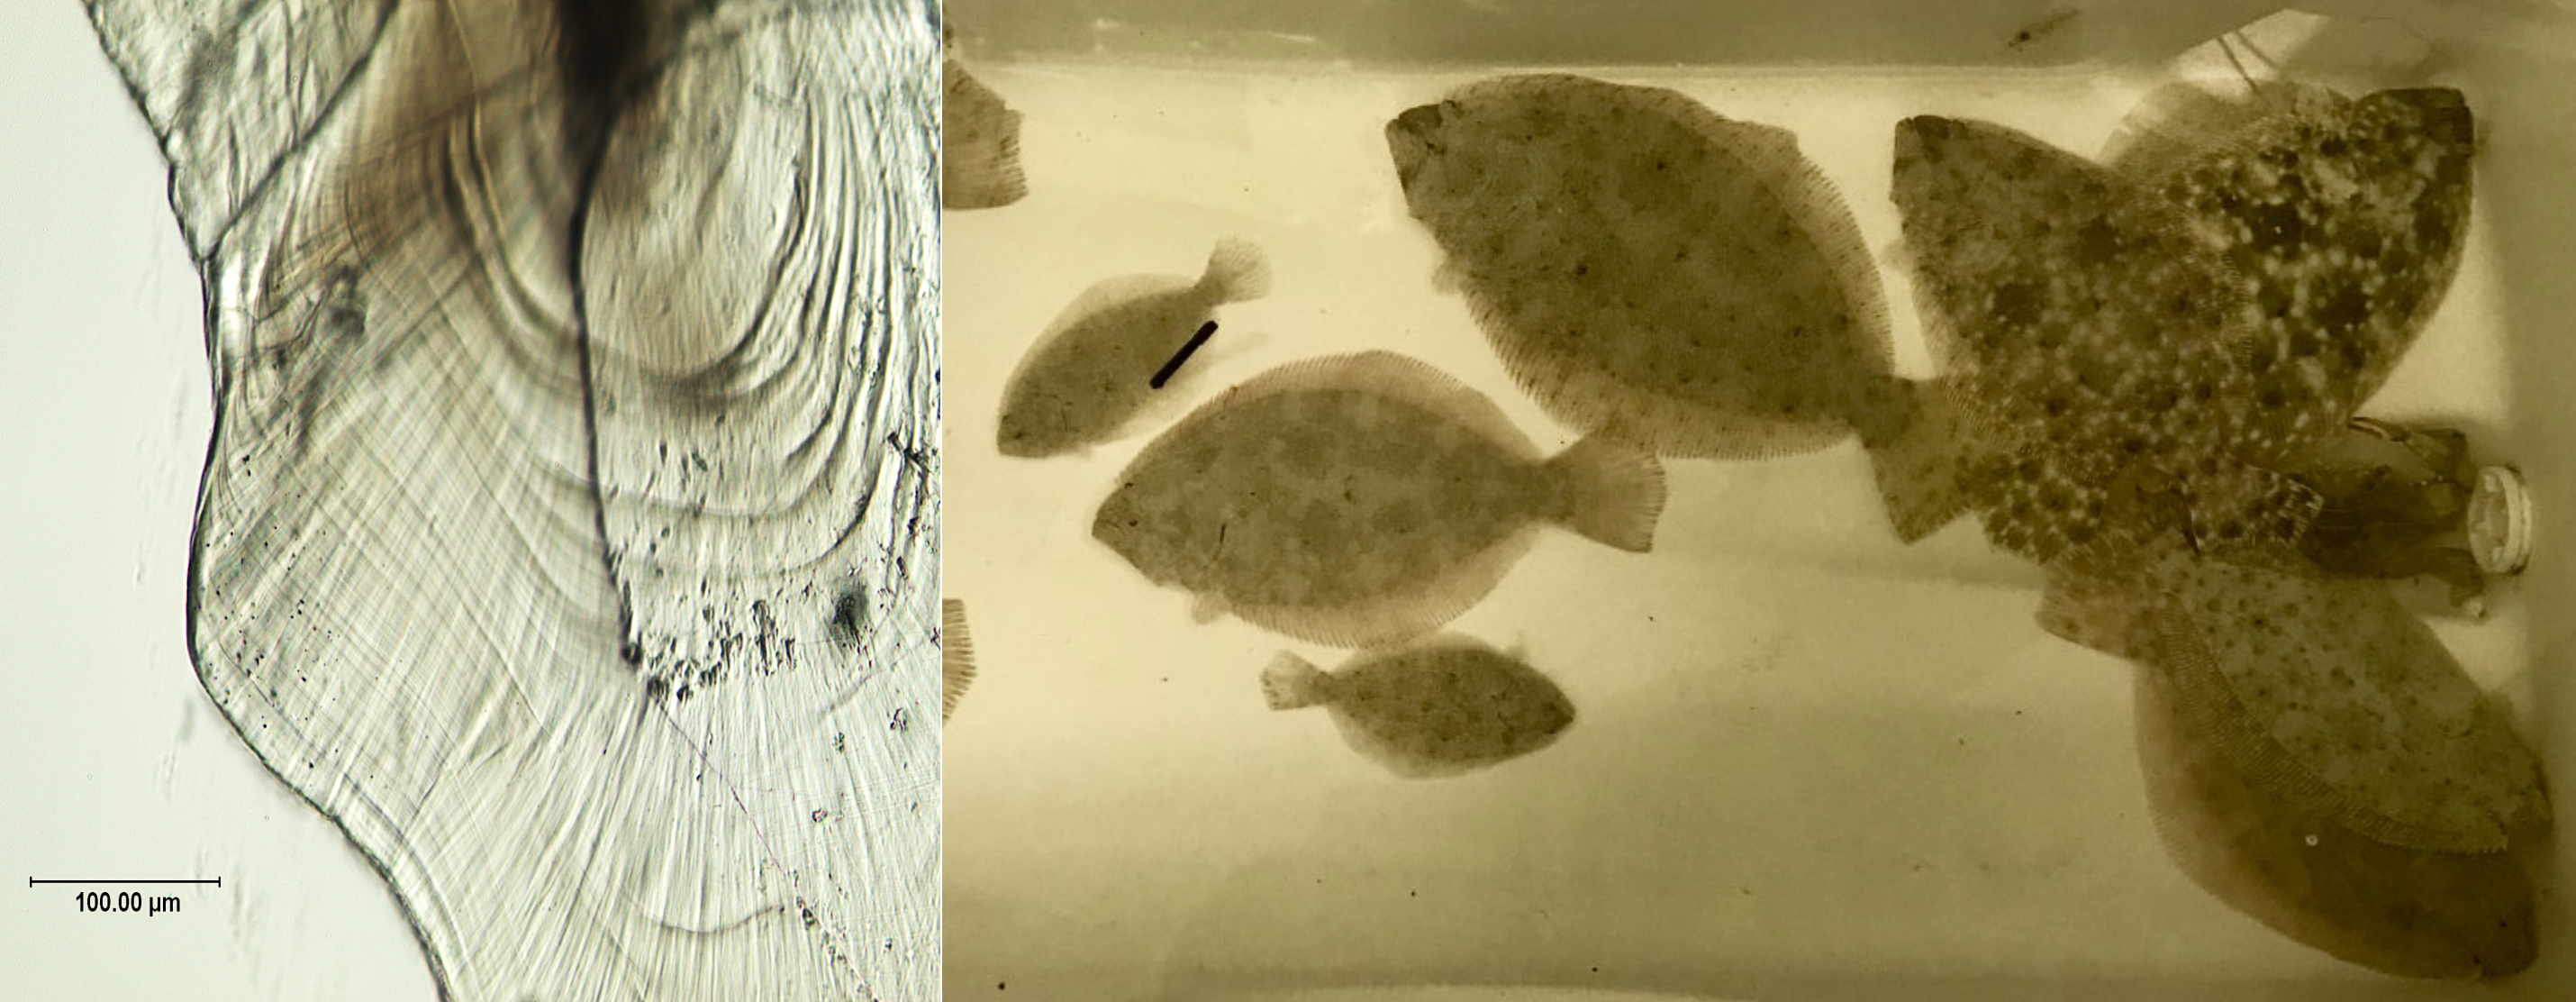 Post-experimental southern flounder exhibits a mainly diet-driven variation in size (right panel). Researchers examined the visible daily increments of growth in juvenile southern flounder otoliths (ear bones) to estimate recent growth history (left panel)